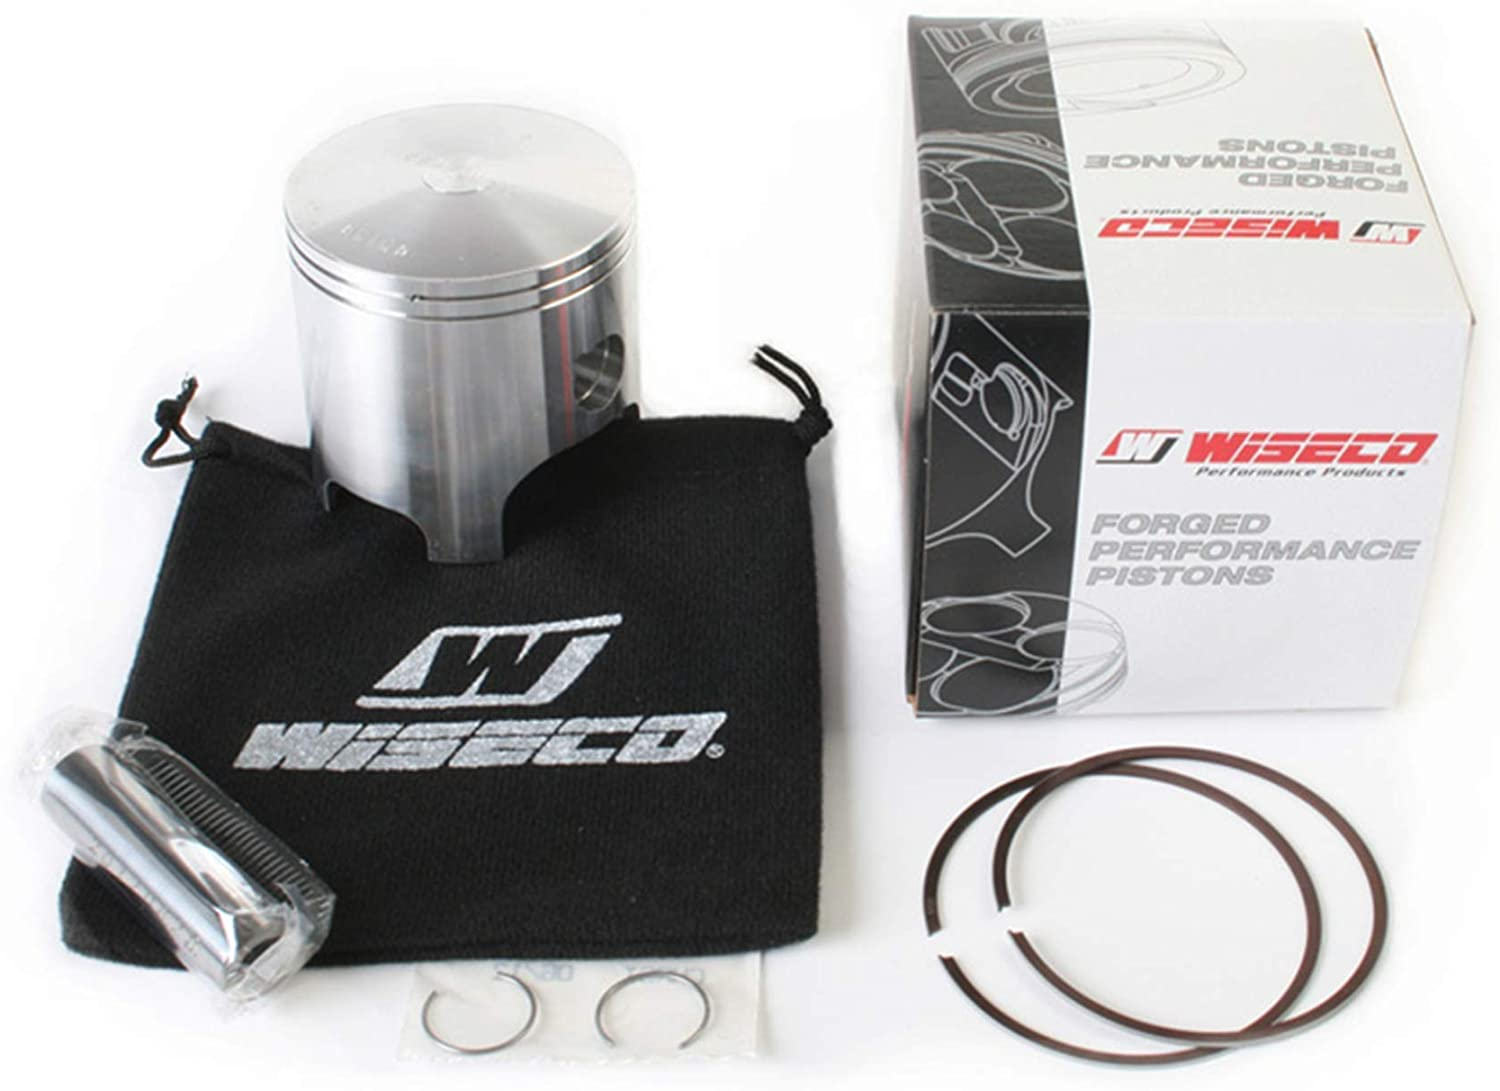 Wiseco Piston 66MM 11.7:1 for Honda CRF-150R 07-09